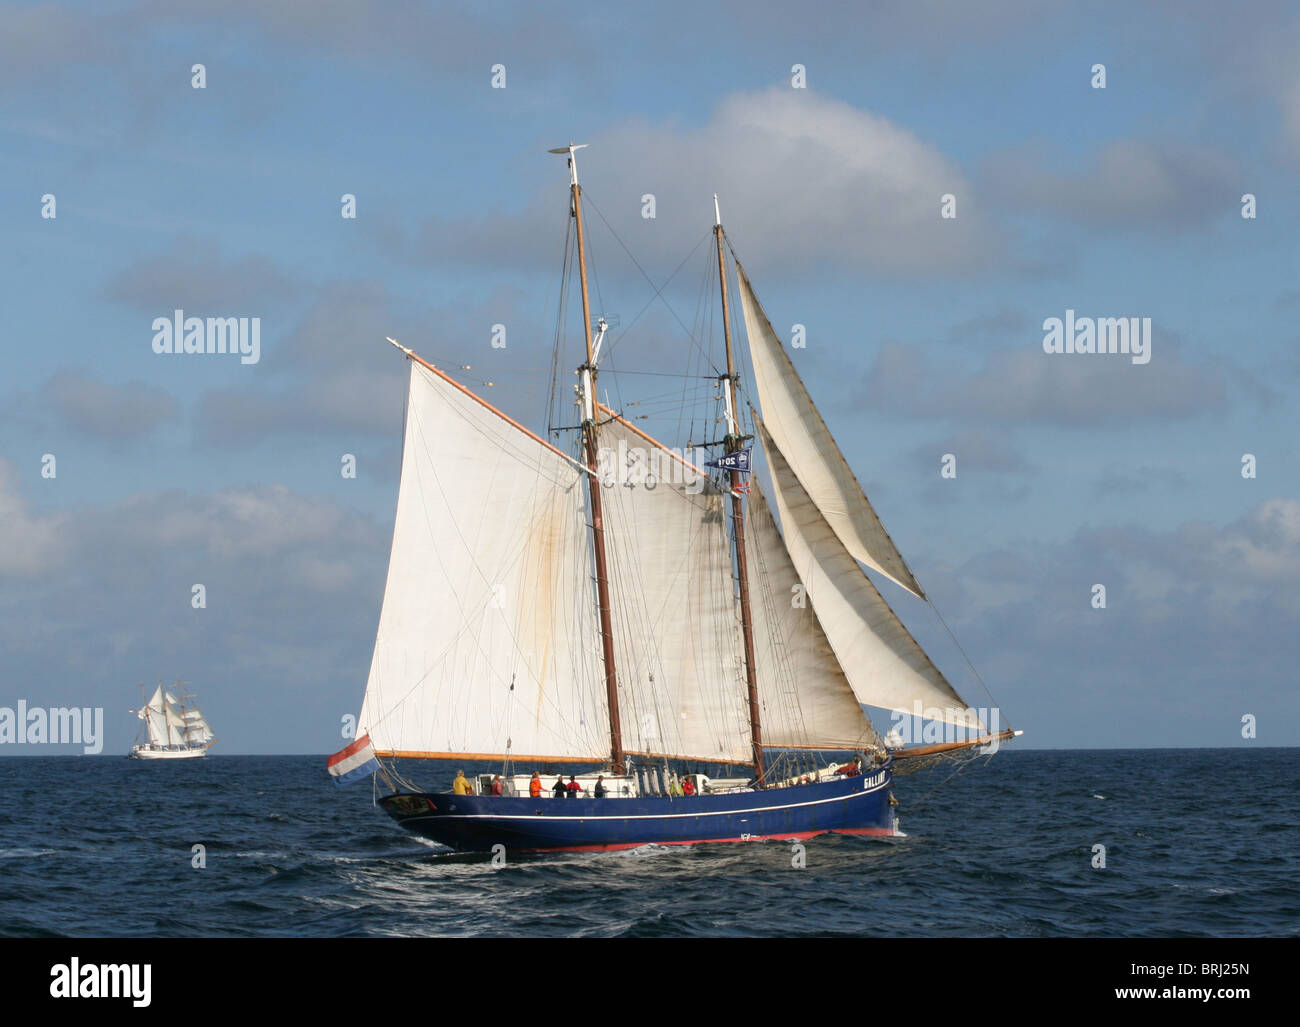 Galant, The Tall Ships Races 2010, Kristiansand - Stock Image